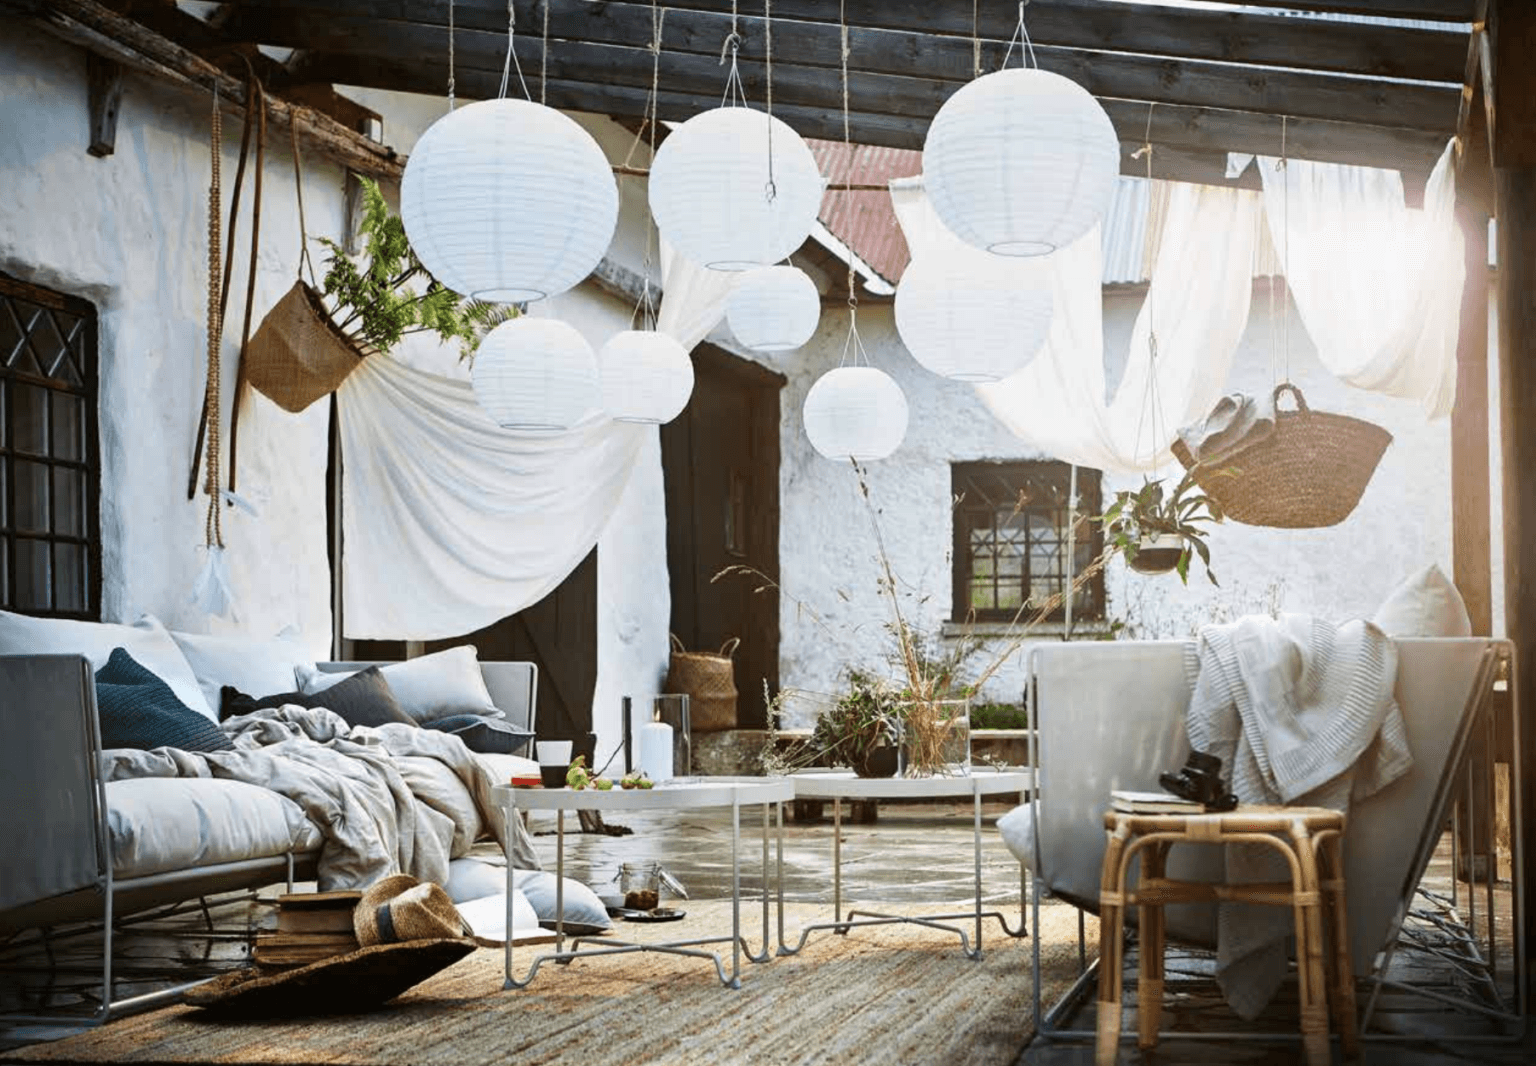 Ikea Summer 2018 10 Best Products For Outdoor Living On A Budget